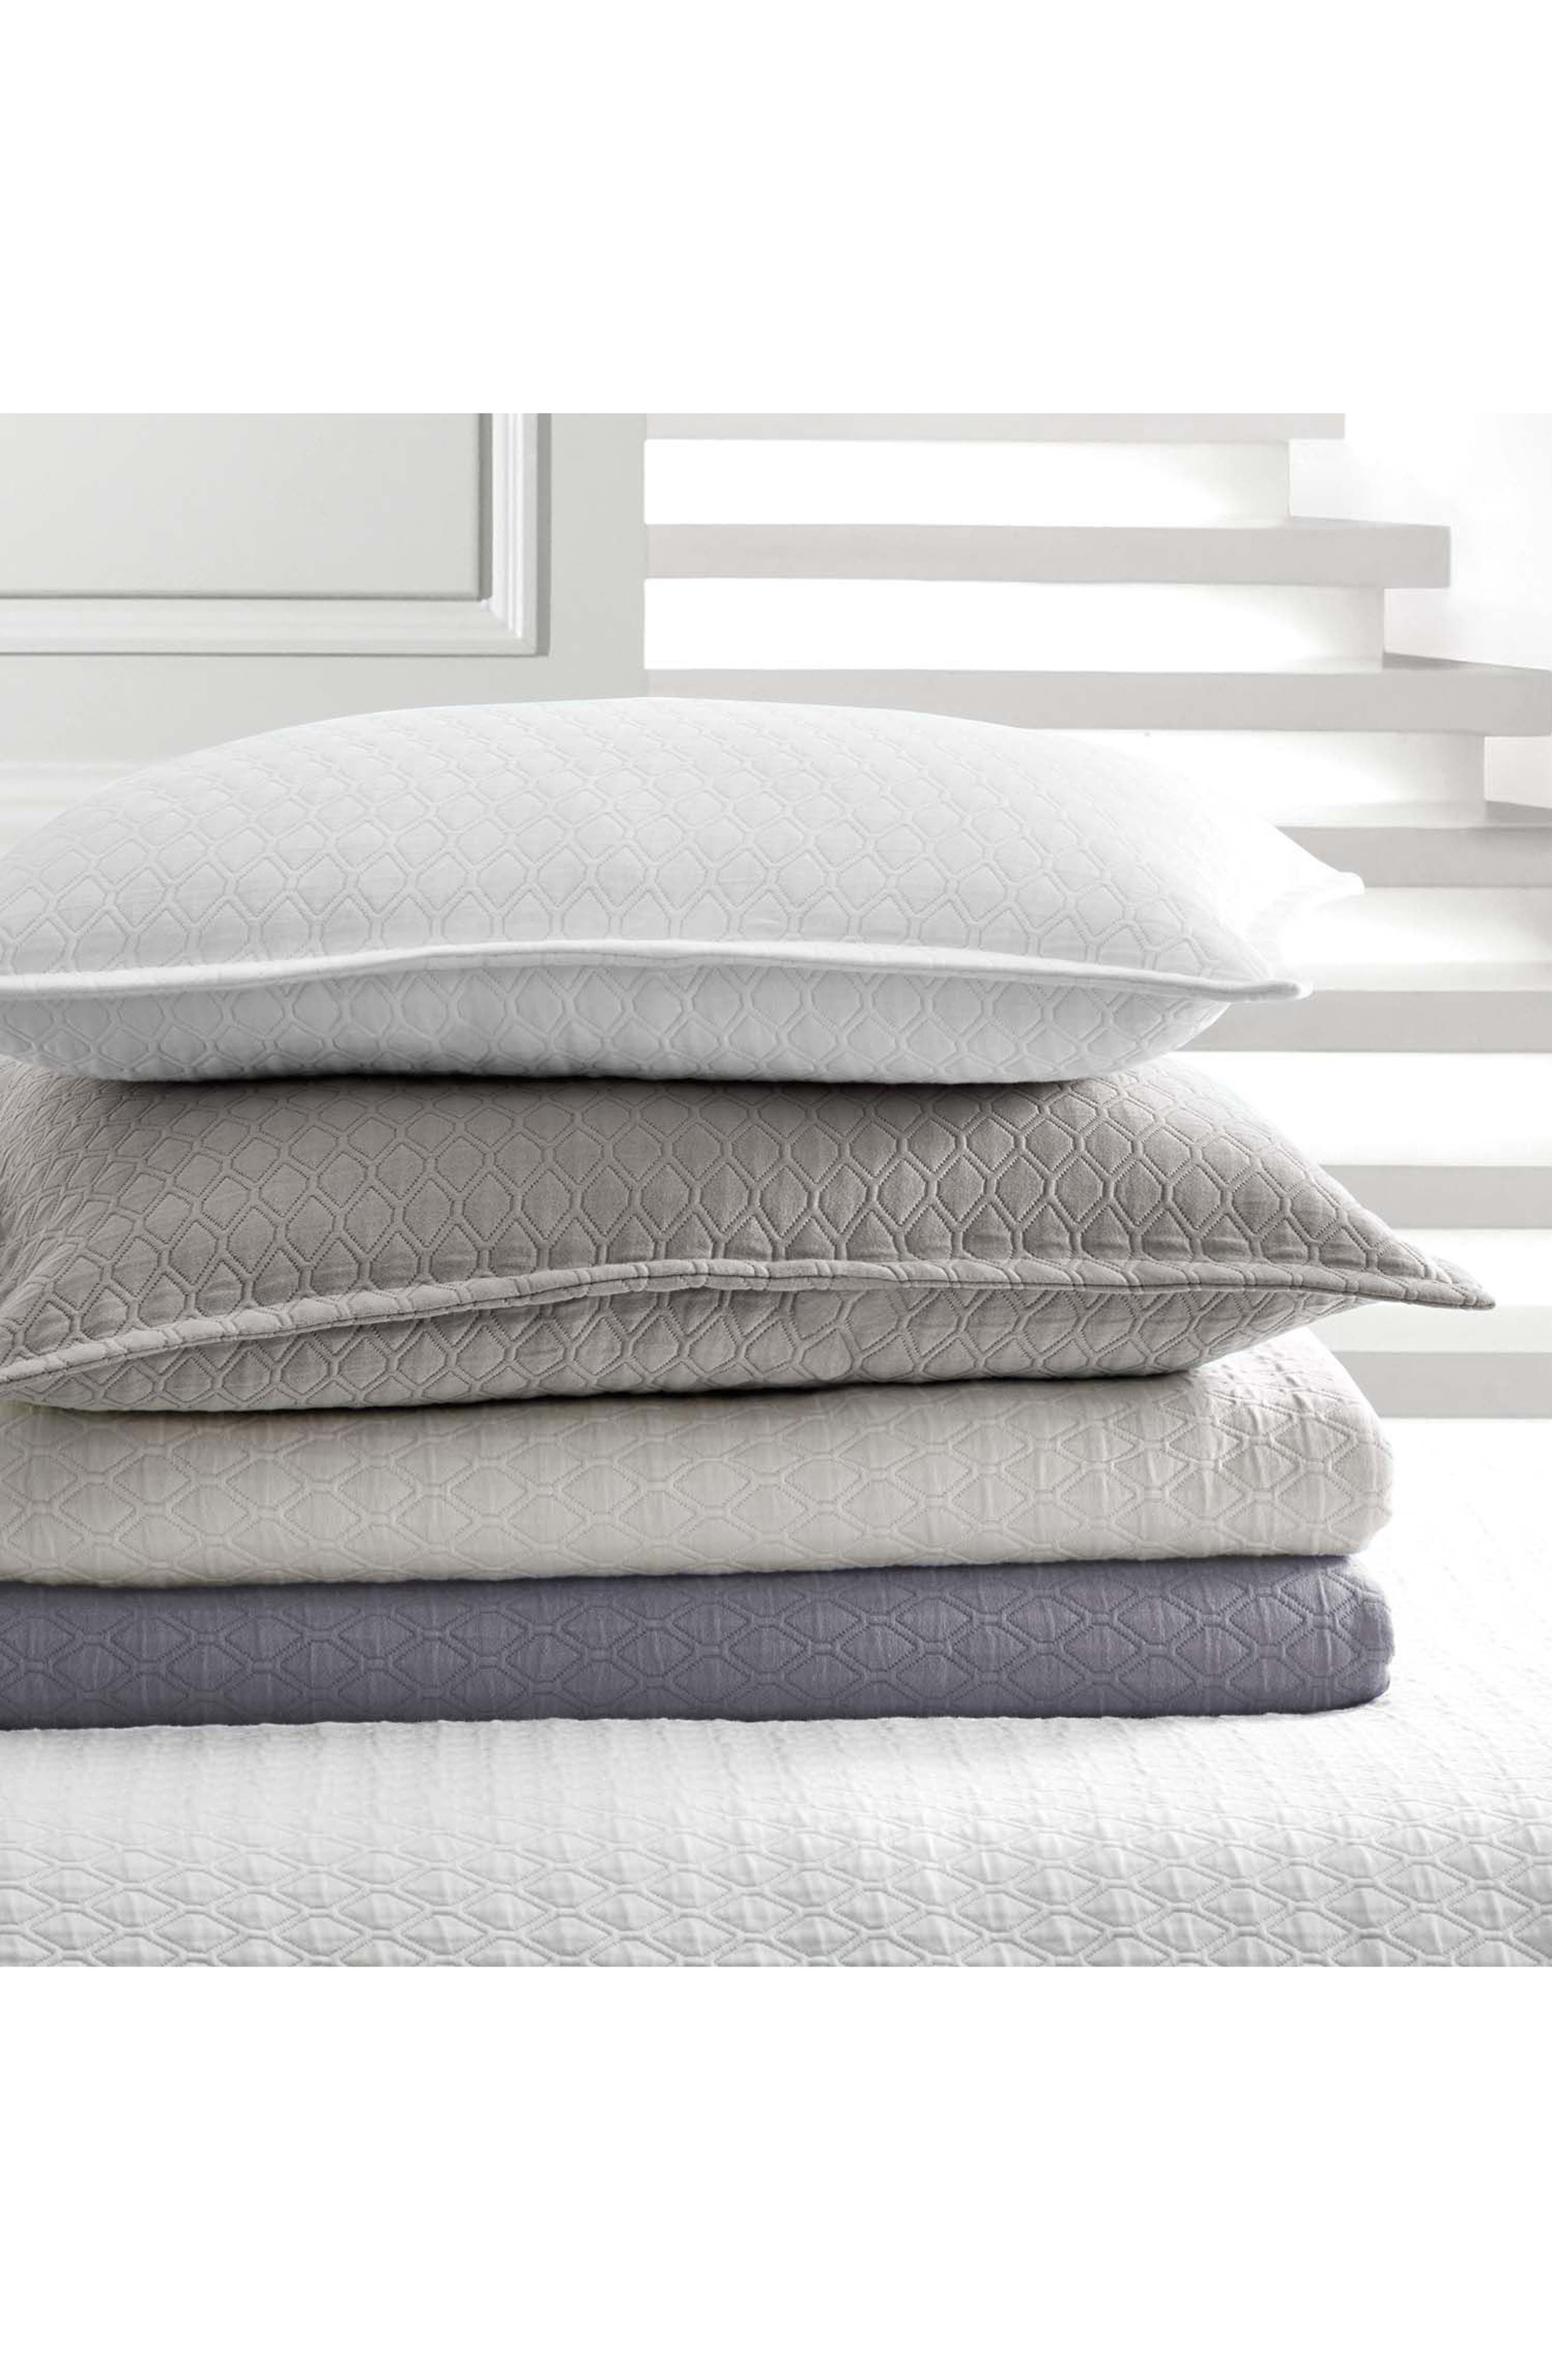 Alternate Image 3  - Vera Wang Puckered Diamond Matelassé Coverlet